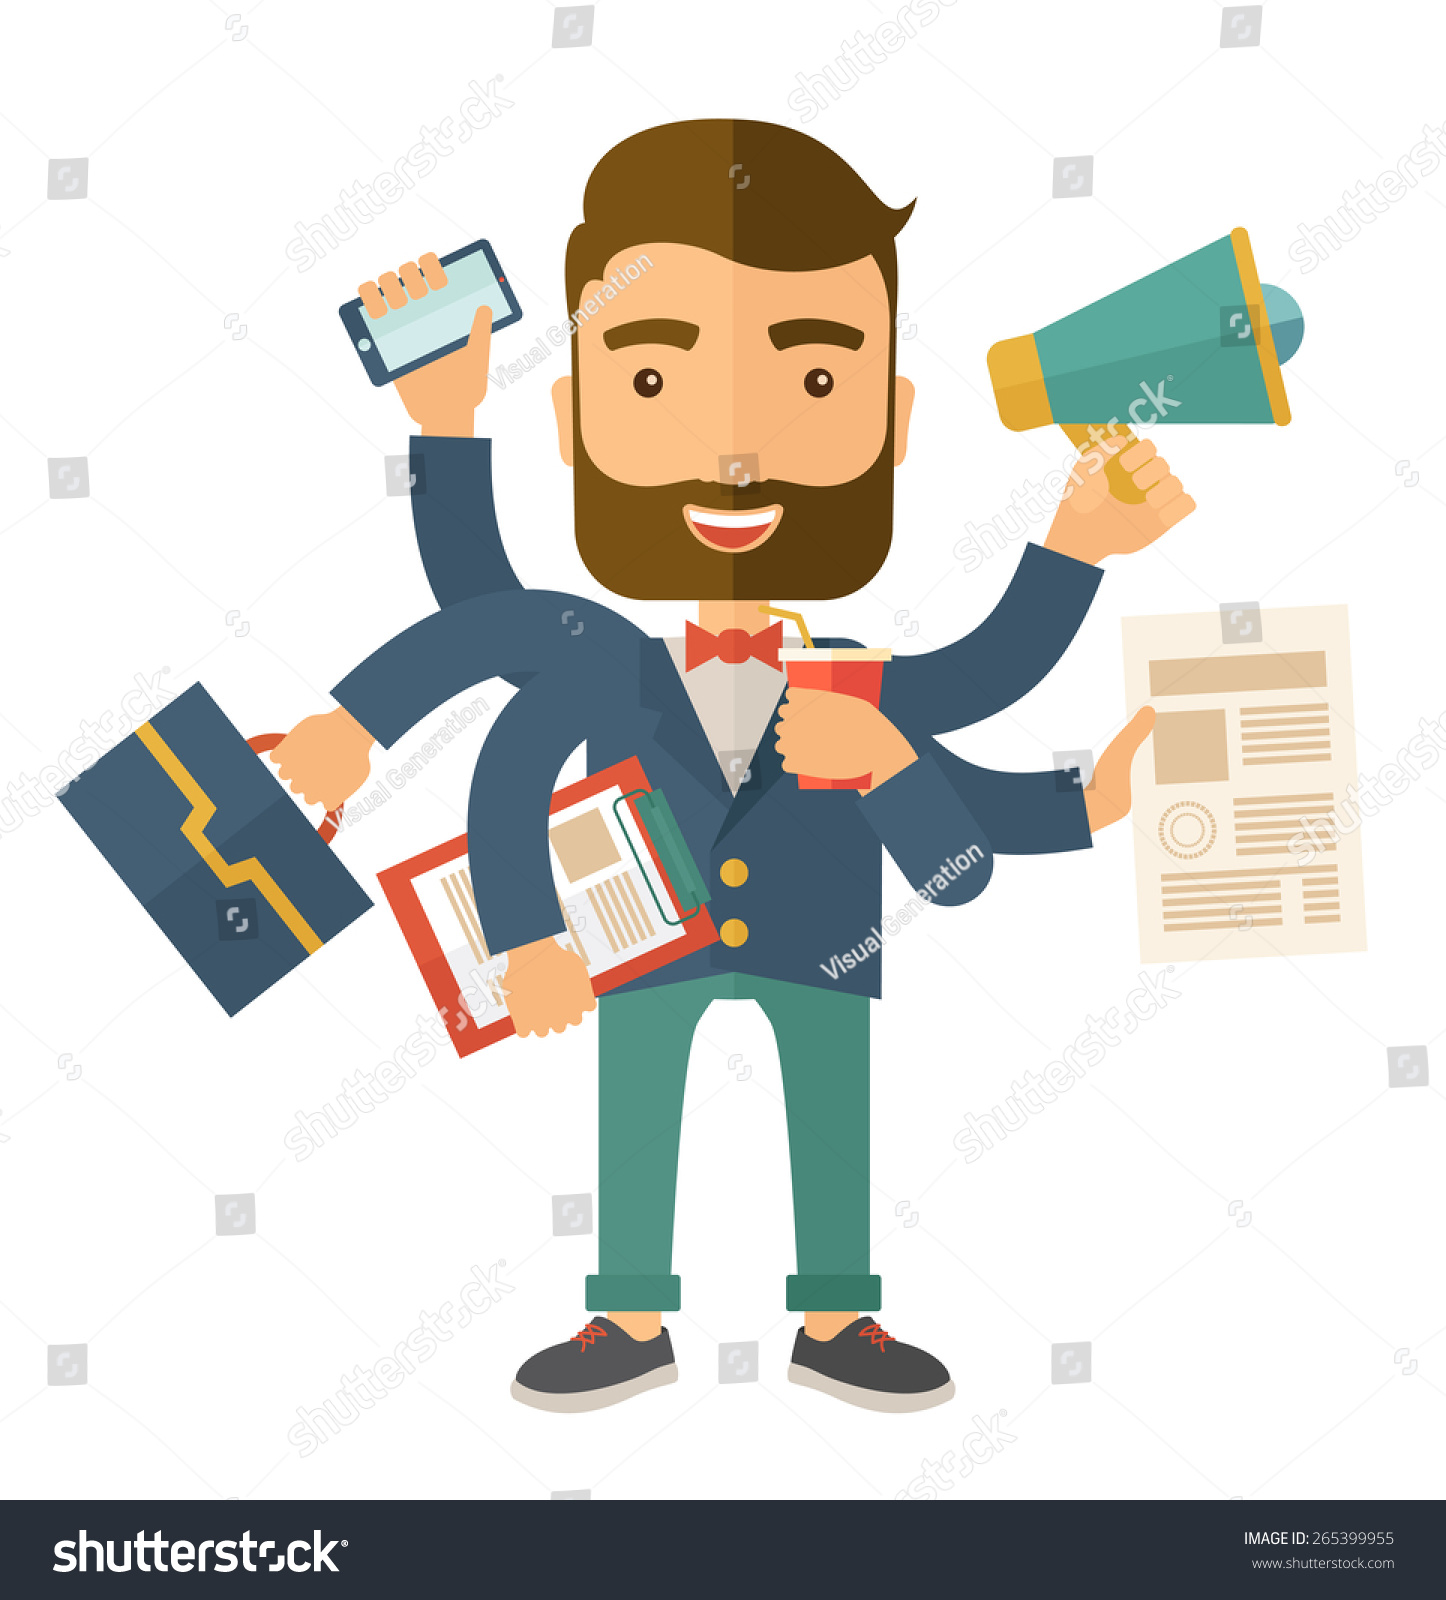 A young happy hipster Caucasian with beard has six arms doing multiple office tasks at once as a symbol of the ability to multitask performing multiple task simultaneously Multitasking concept